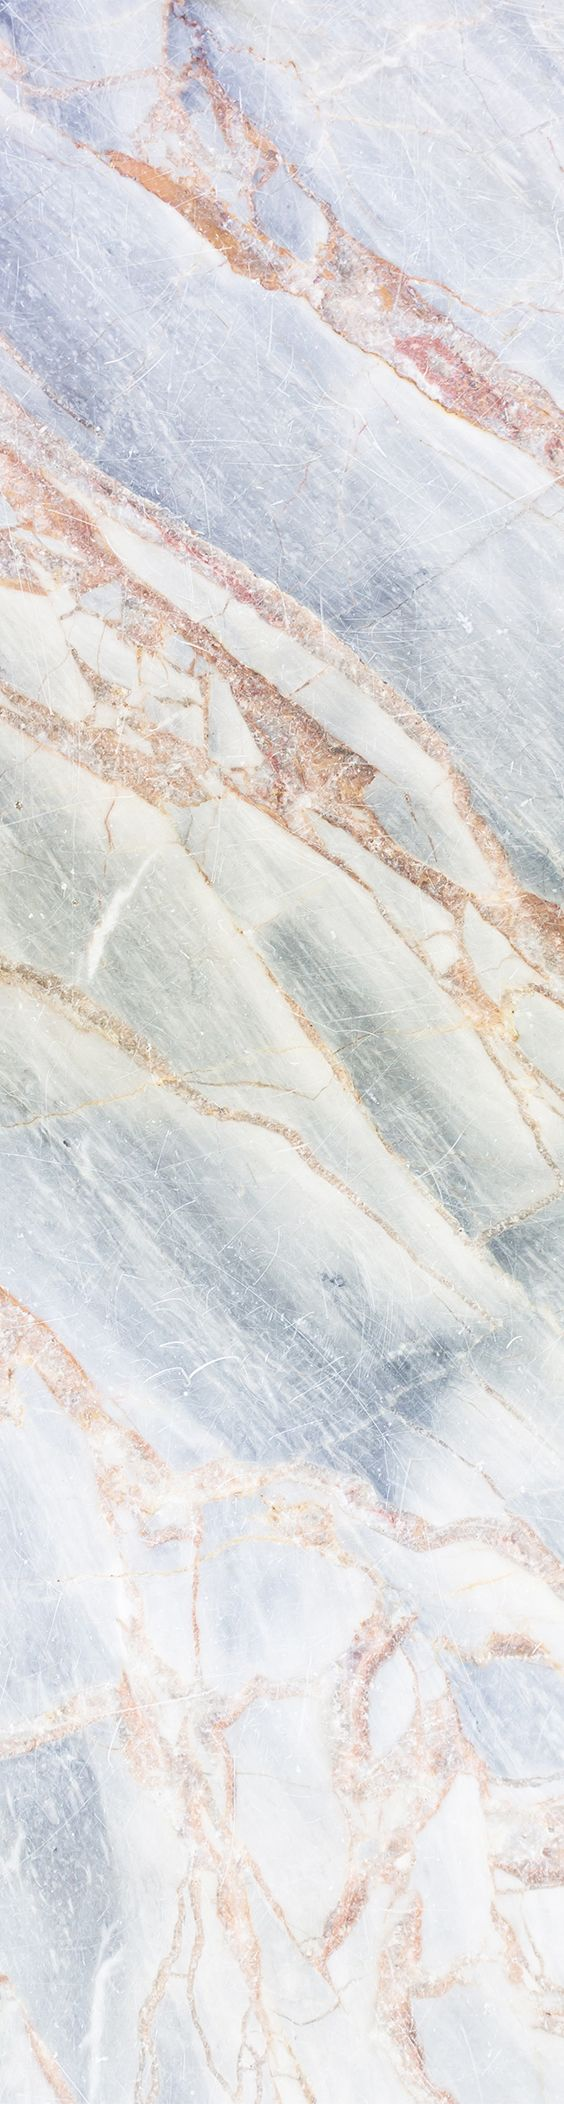 Simple Wallpaper Marble Copper - 7b7d059a5342759cf00e7e42ab0cb588--copper-wallpaper-marble-laptop-wallpaper  Pic_632793.jpg